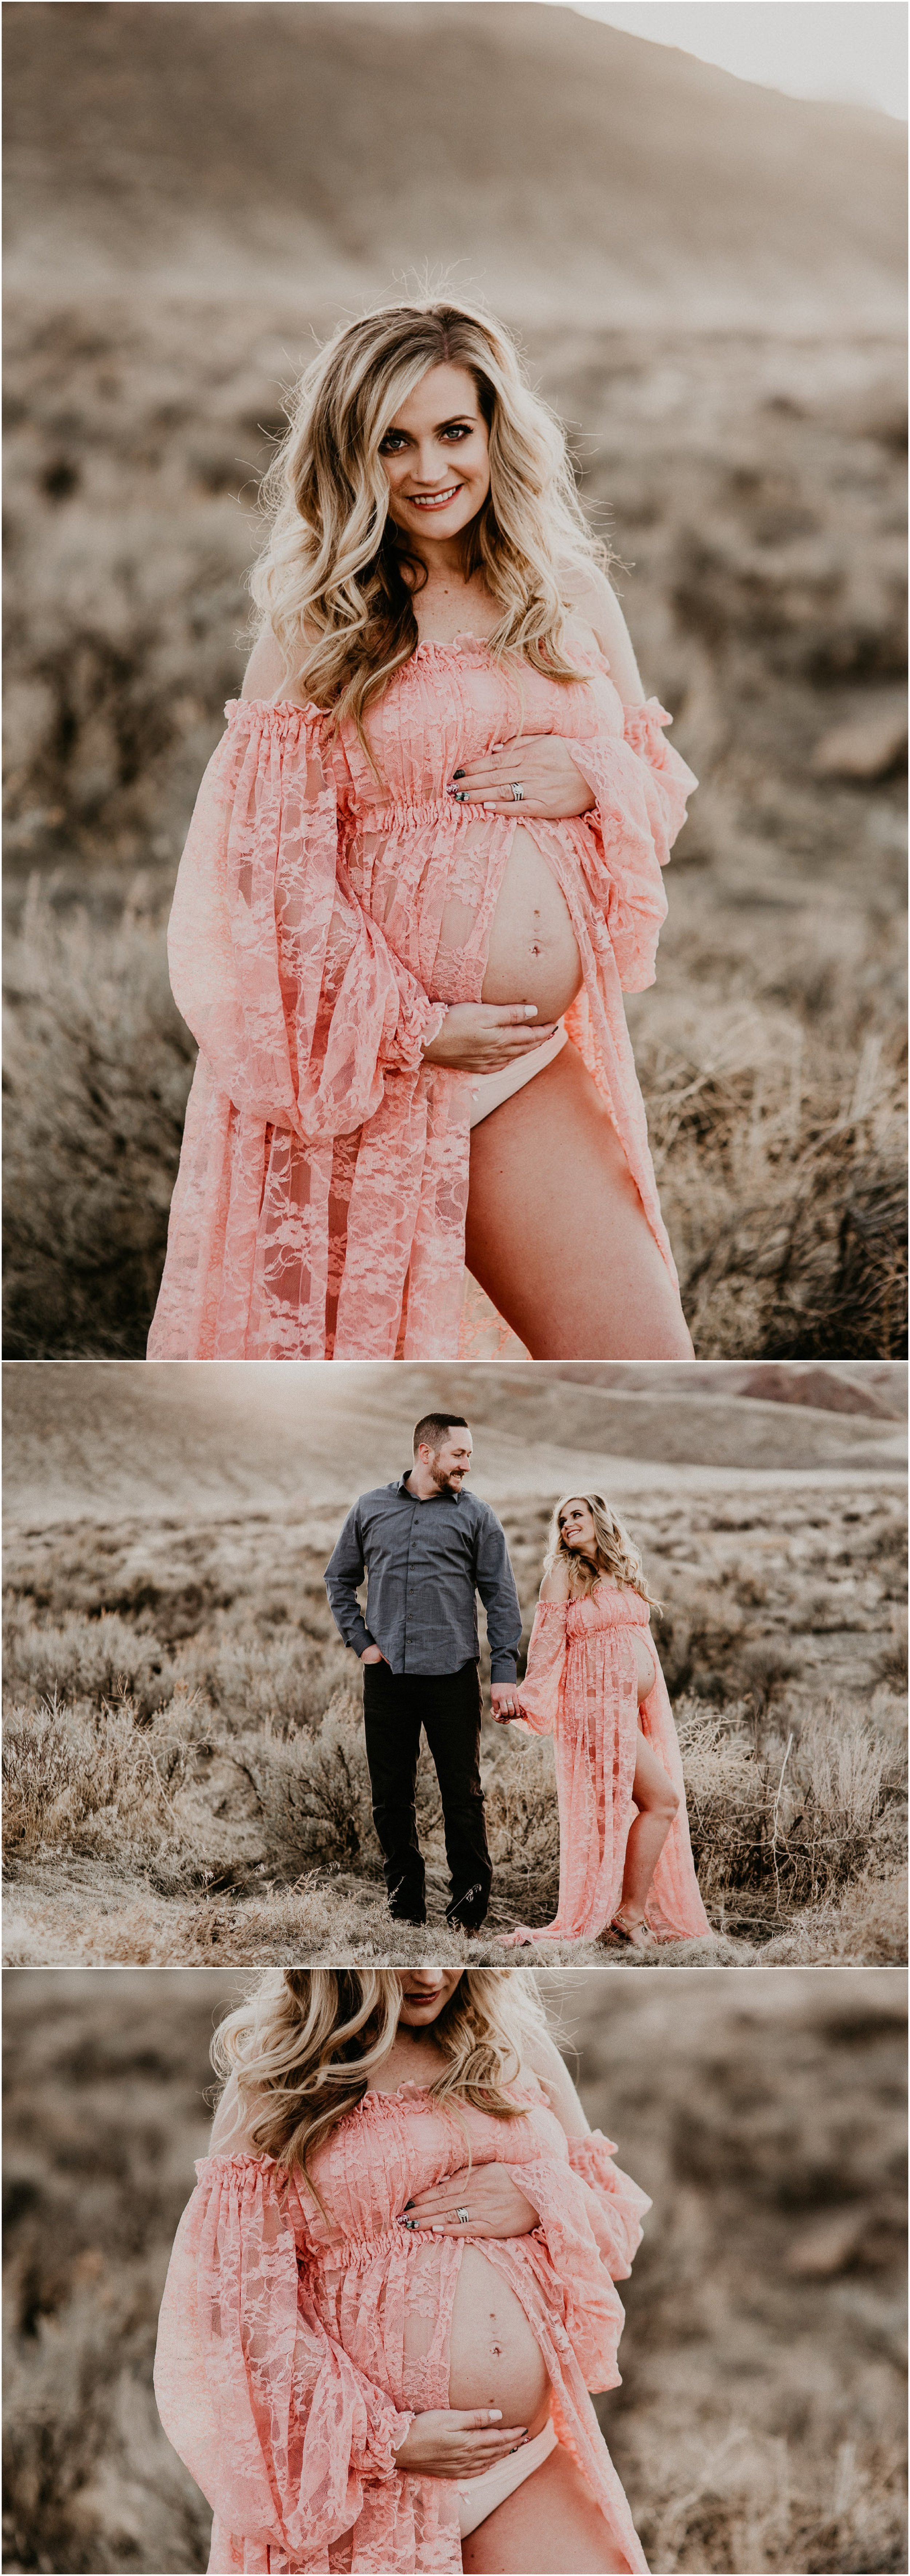 Boise Maternity Boudoir Photographer Makayla Madden Photography Lace Blush Maternity Dress Sew Trendy Accessories Idaho Motherhood Expecting Hair and Makeup Artist Behrens Artistry Baby Bump